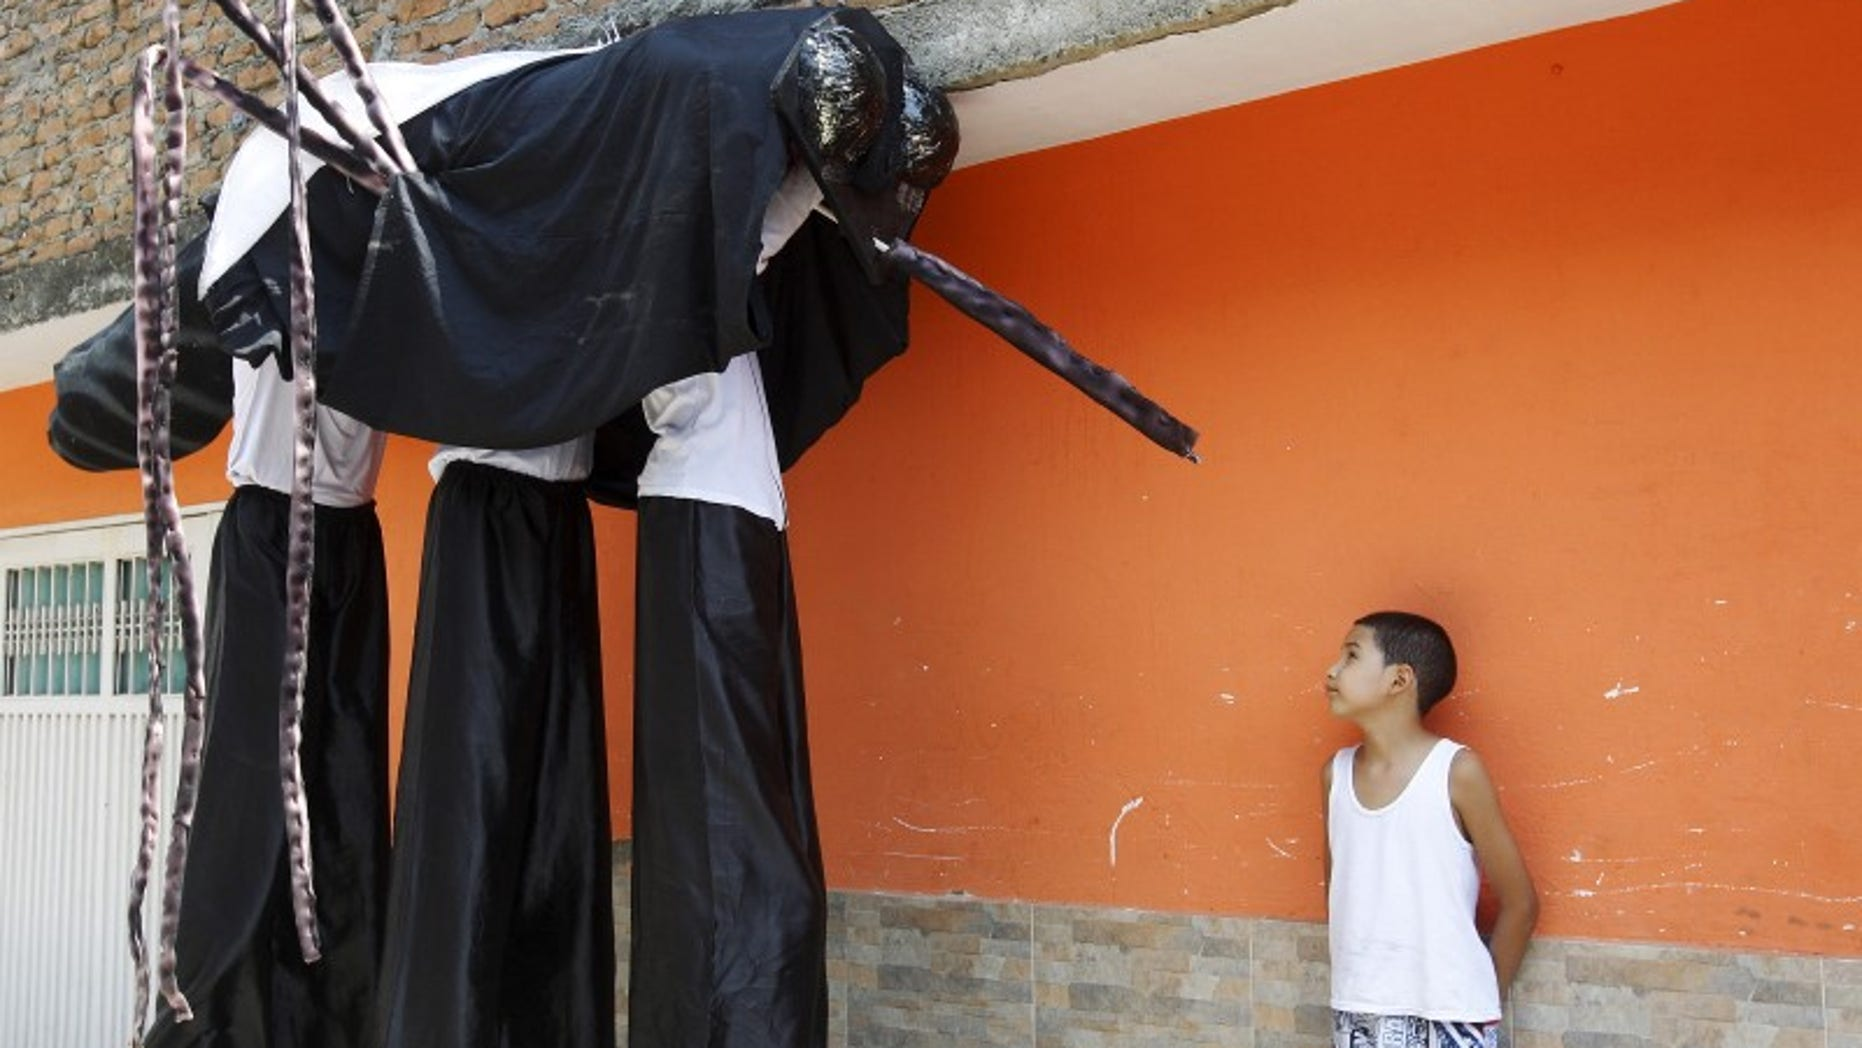 A child looks at men dressed as a mosquito during a health campaign in Cali